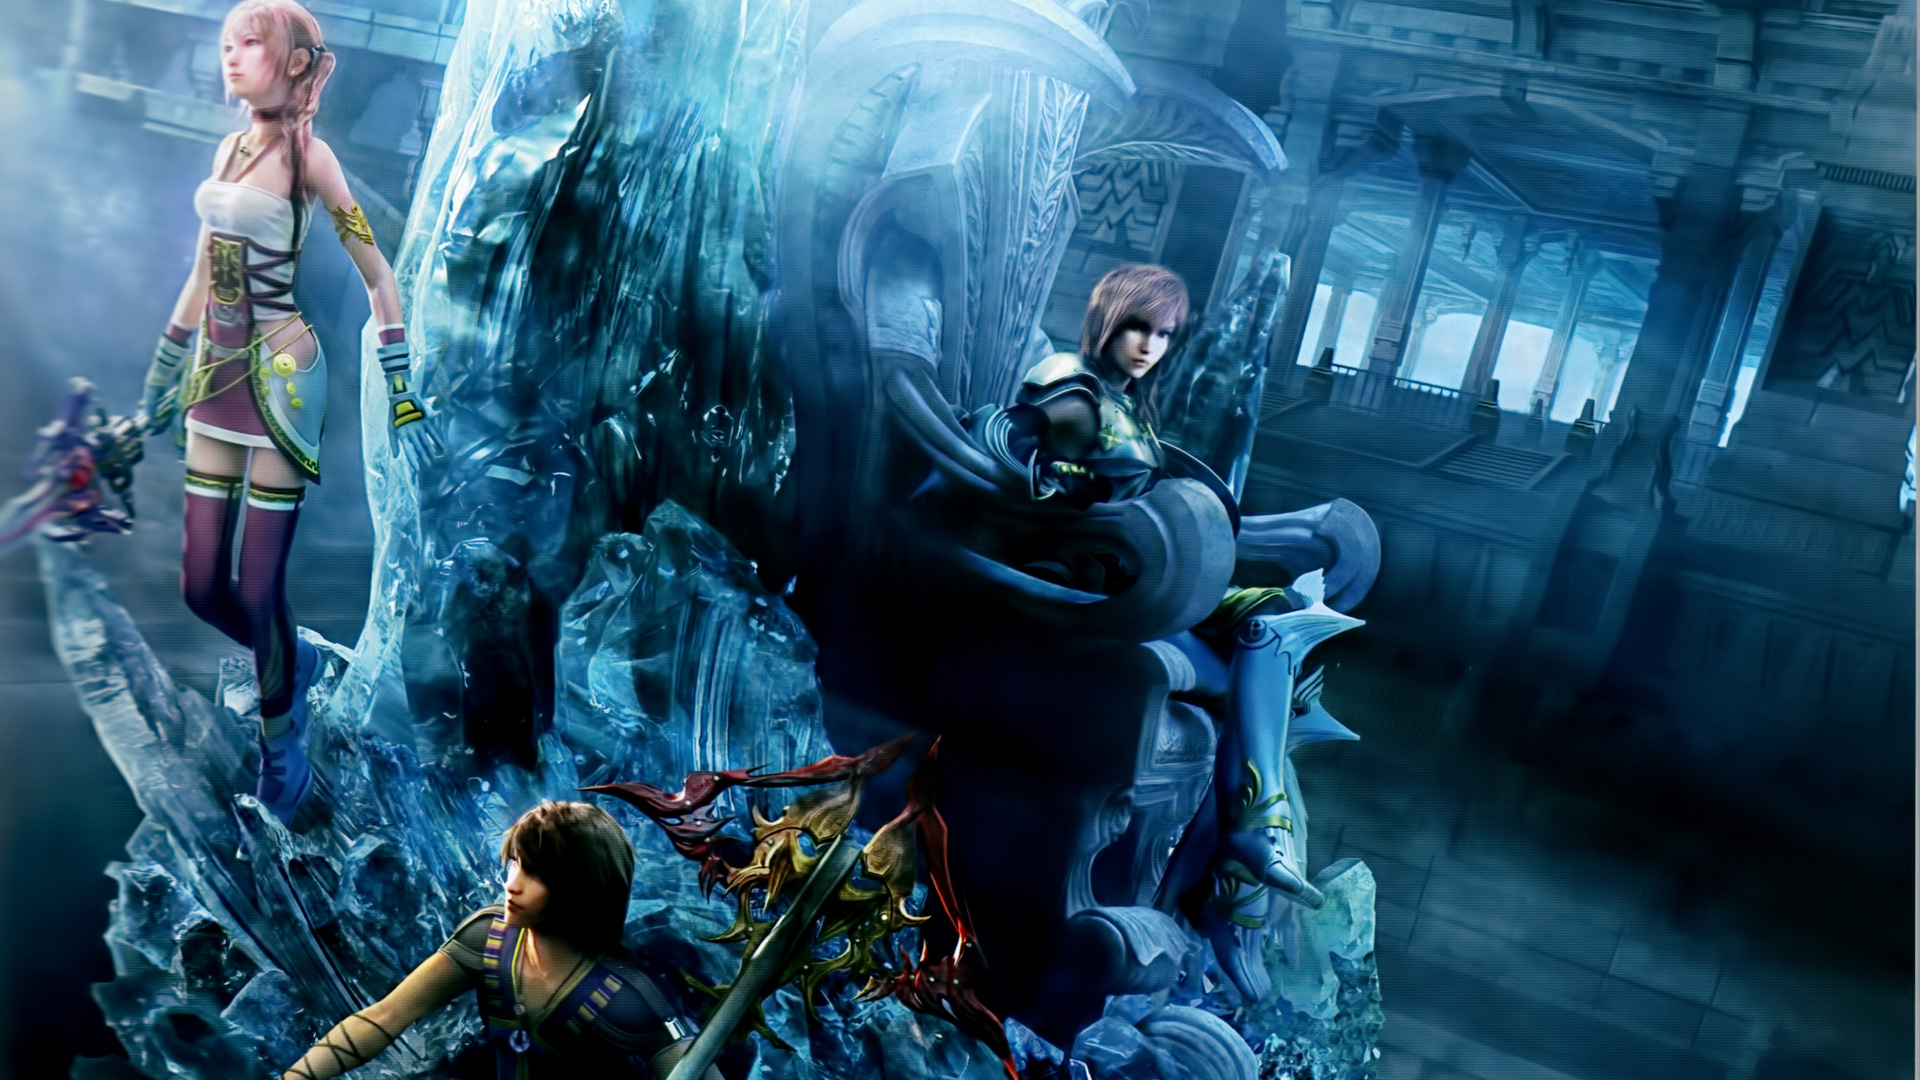 Related Wallpaper for Final Fantasy XIII Wallpapers 1920x1080